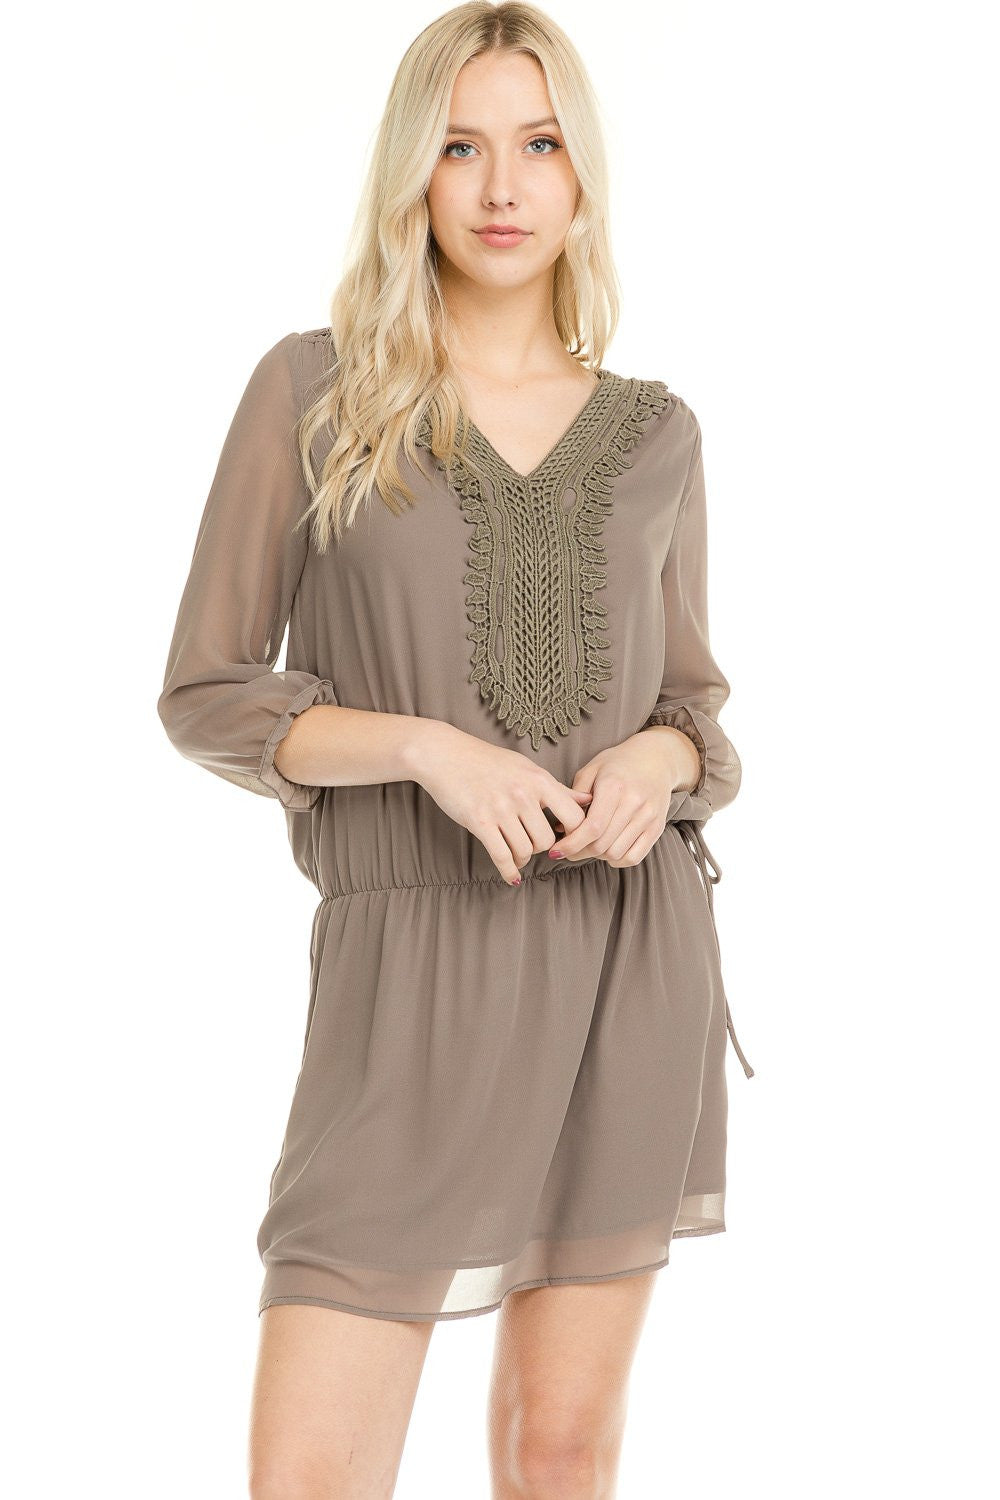 Women's Three Quarter 3/4 Sleeve Crochet Tie Dress - TK Trends Boutique